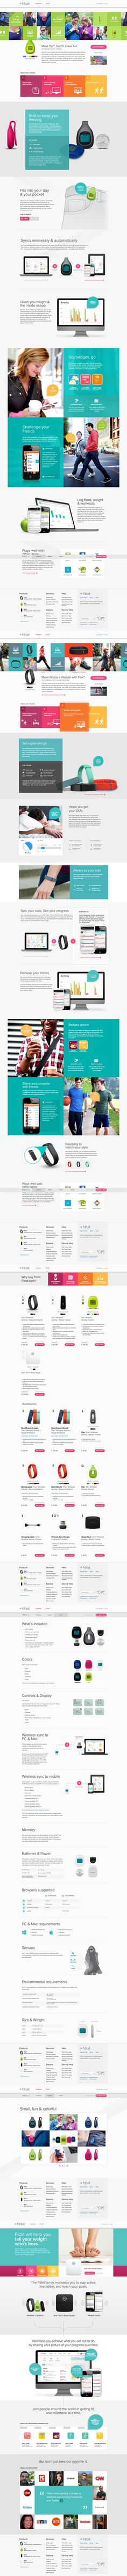 Fitbit #flat #design #interface